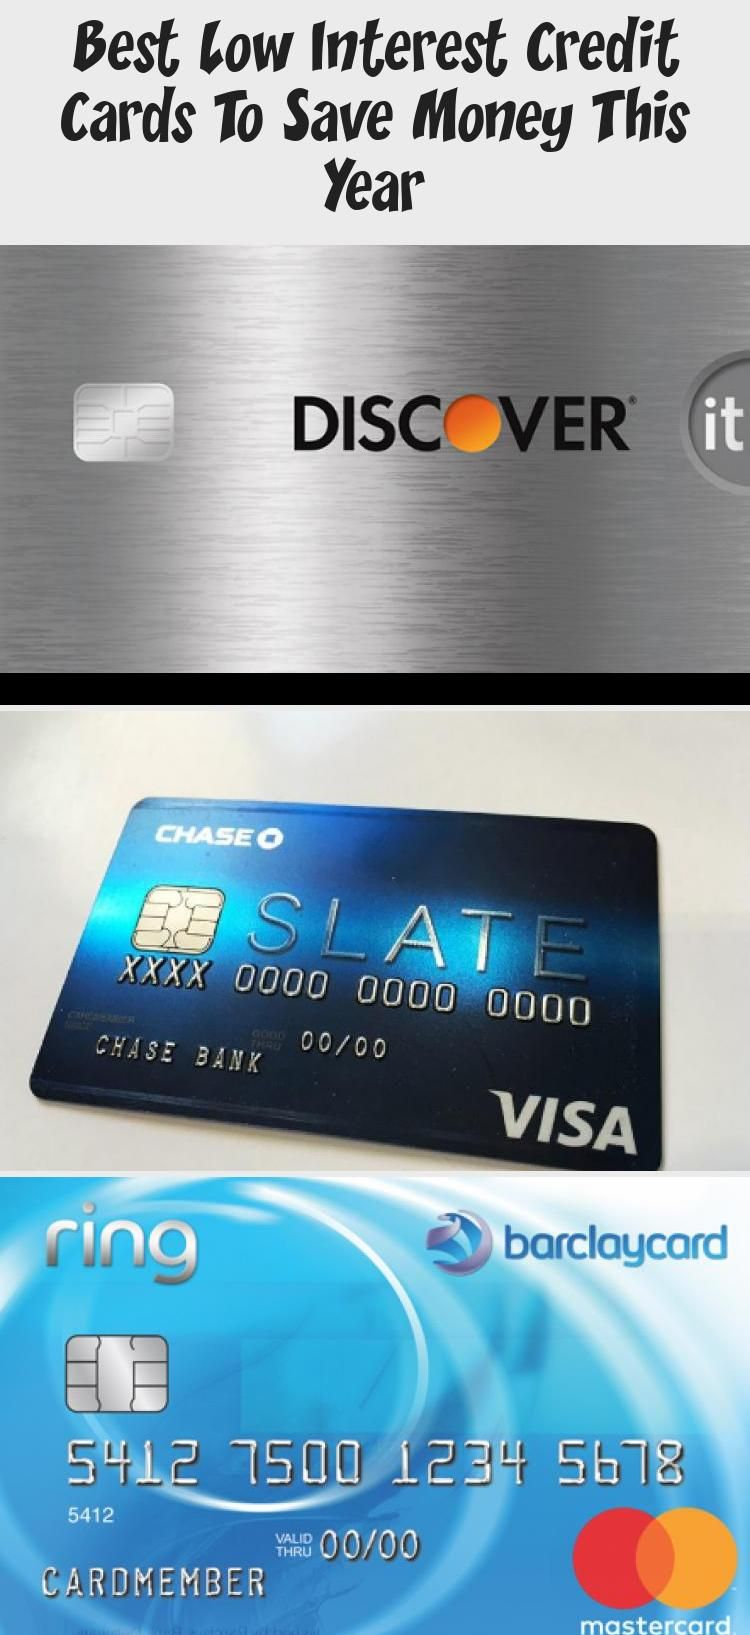 Best Low Interest Credit Cards To Save Money This Year In 2020